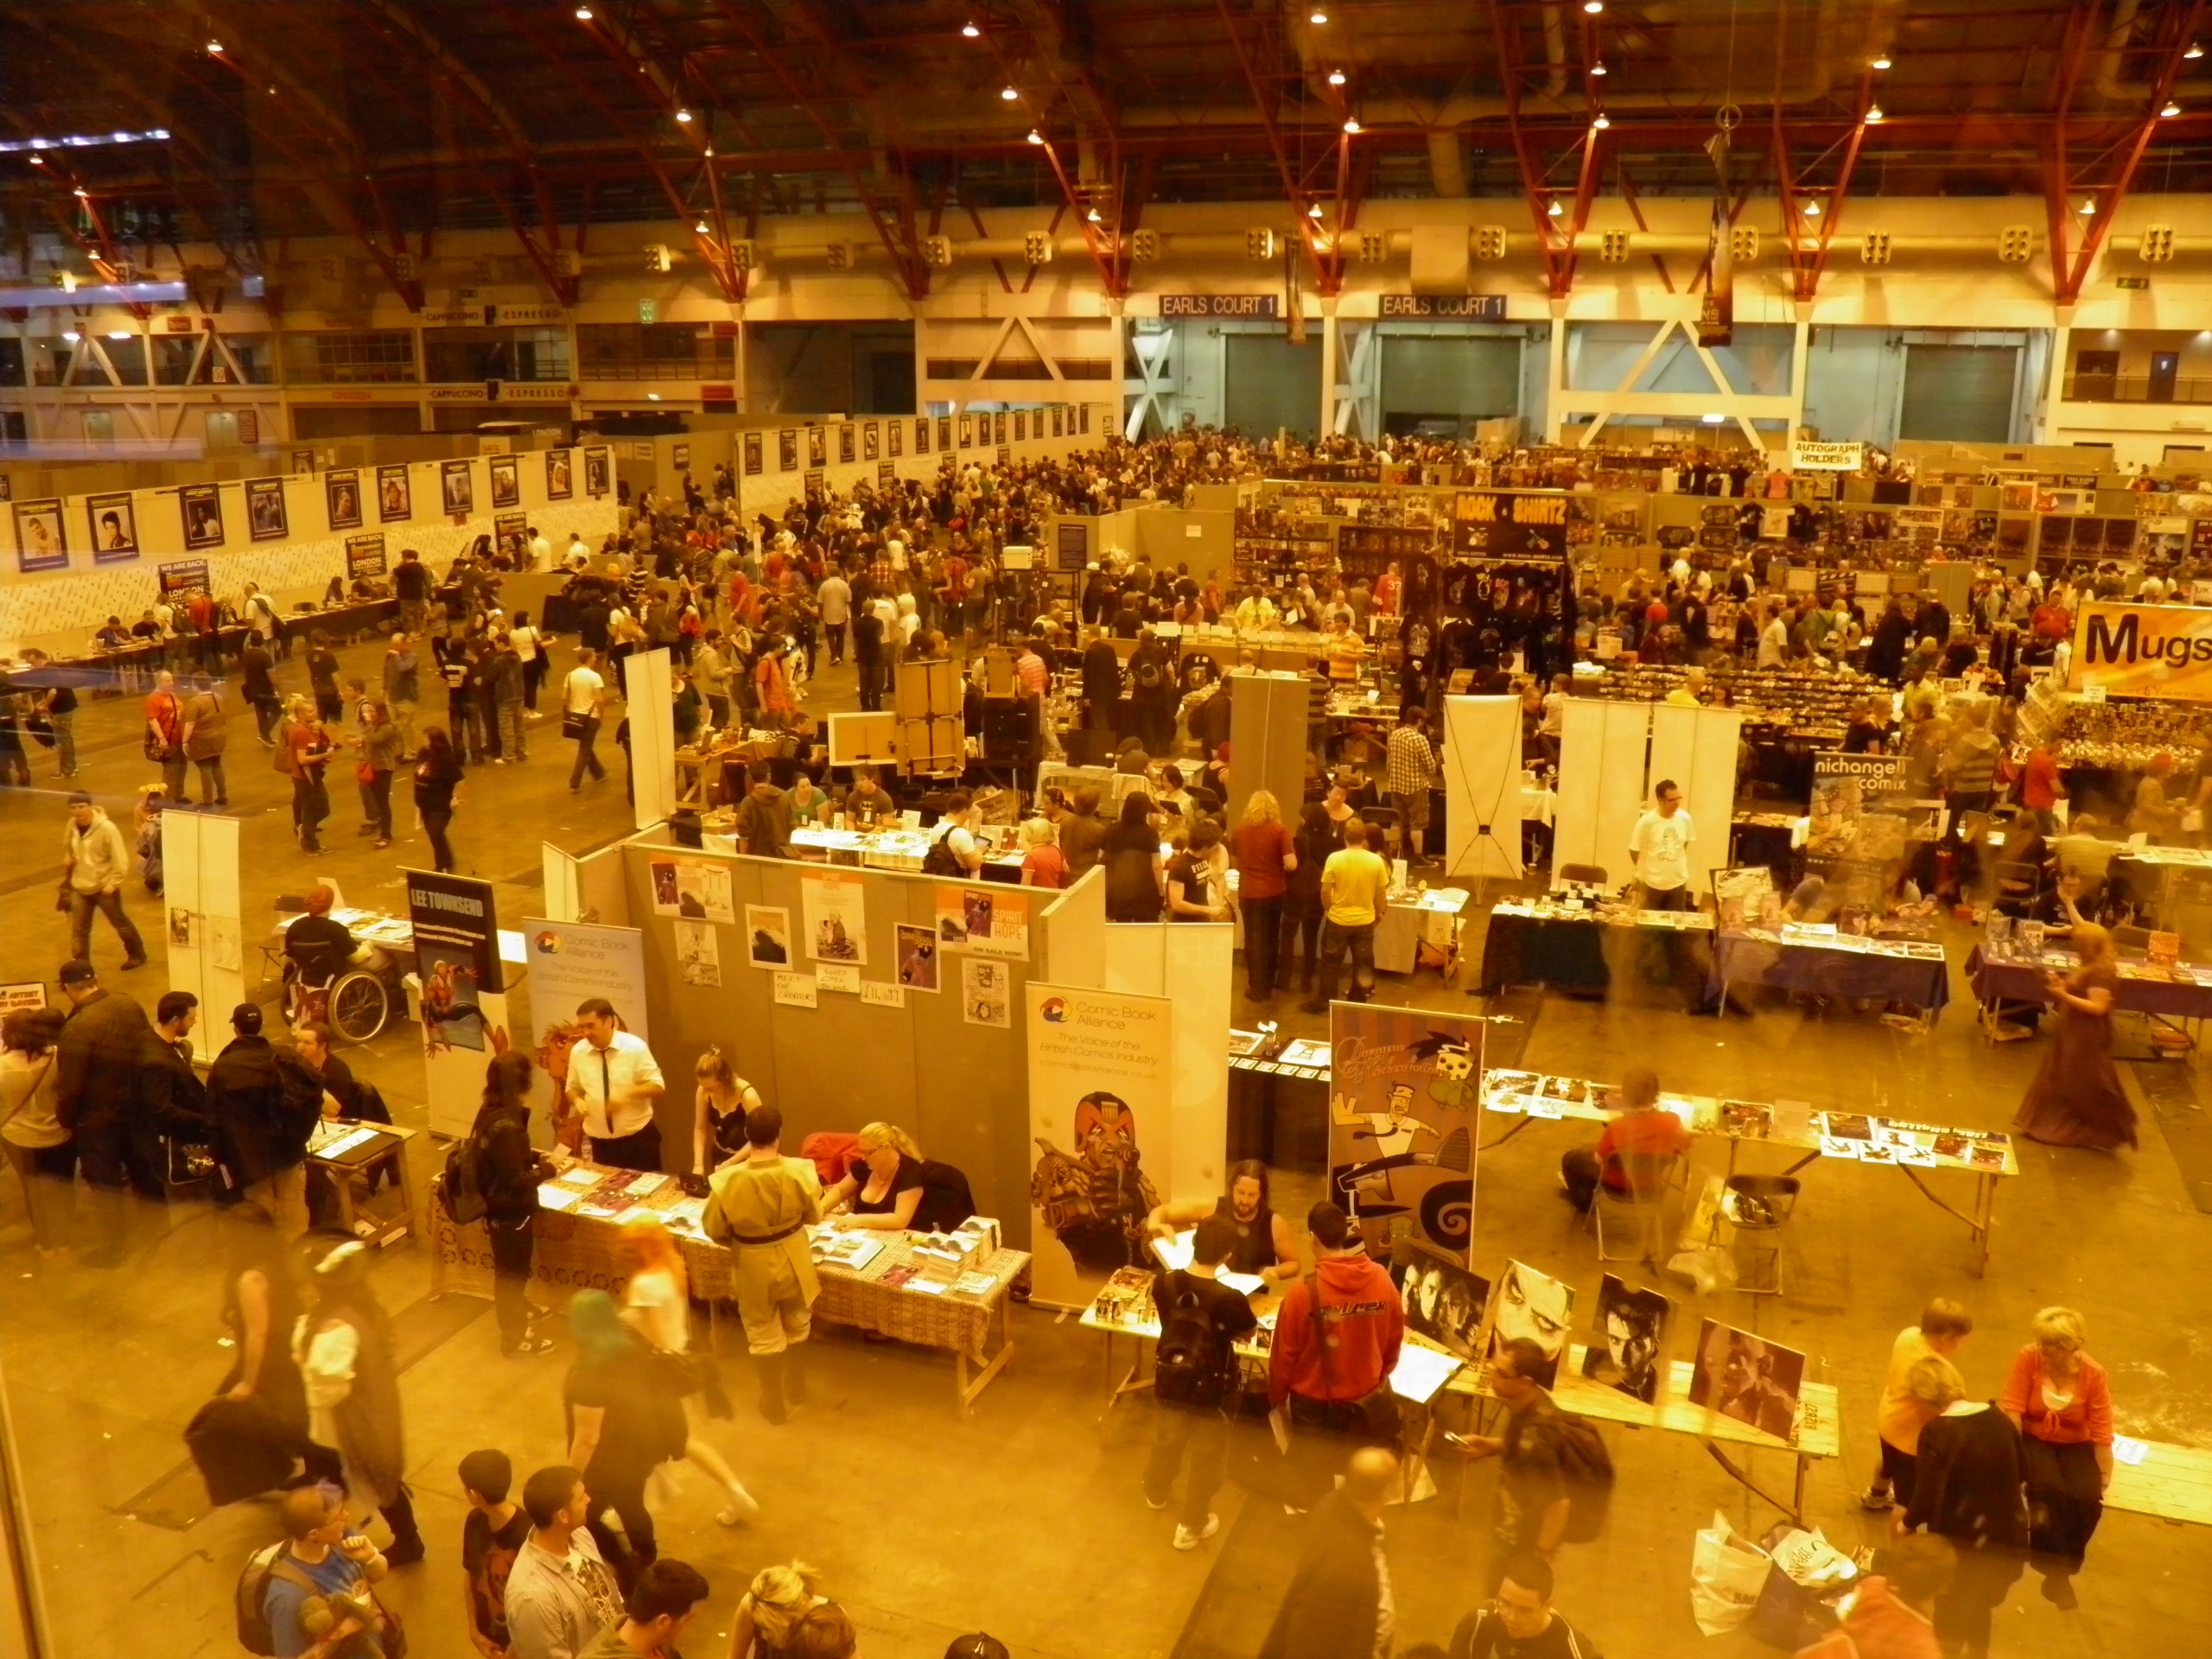 London Film and Comic Convention: A Mindseye View of Londons Largest Science Fiction Event!